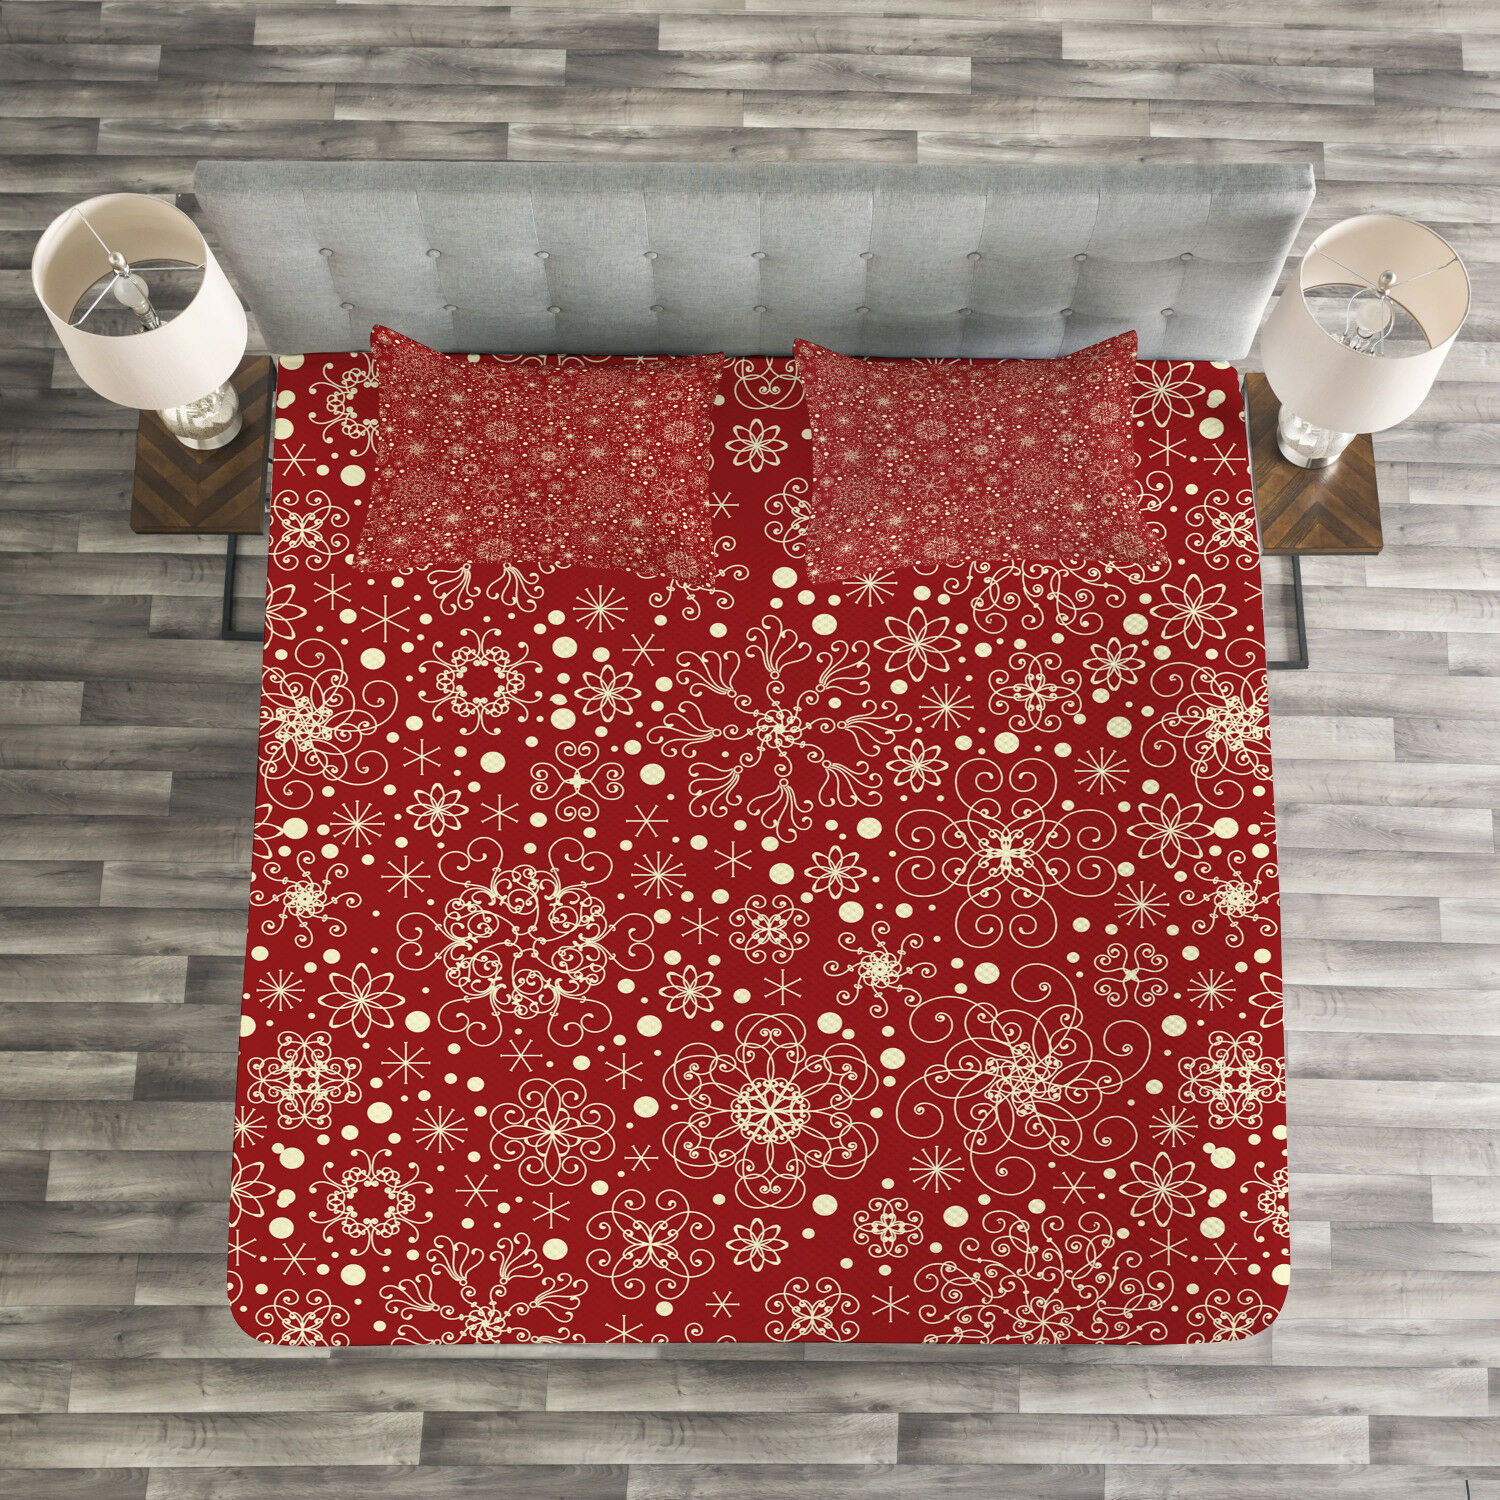 Red Quilted Bedspread & Pillow Shams Set, Filigree Style Snowflakes Print